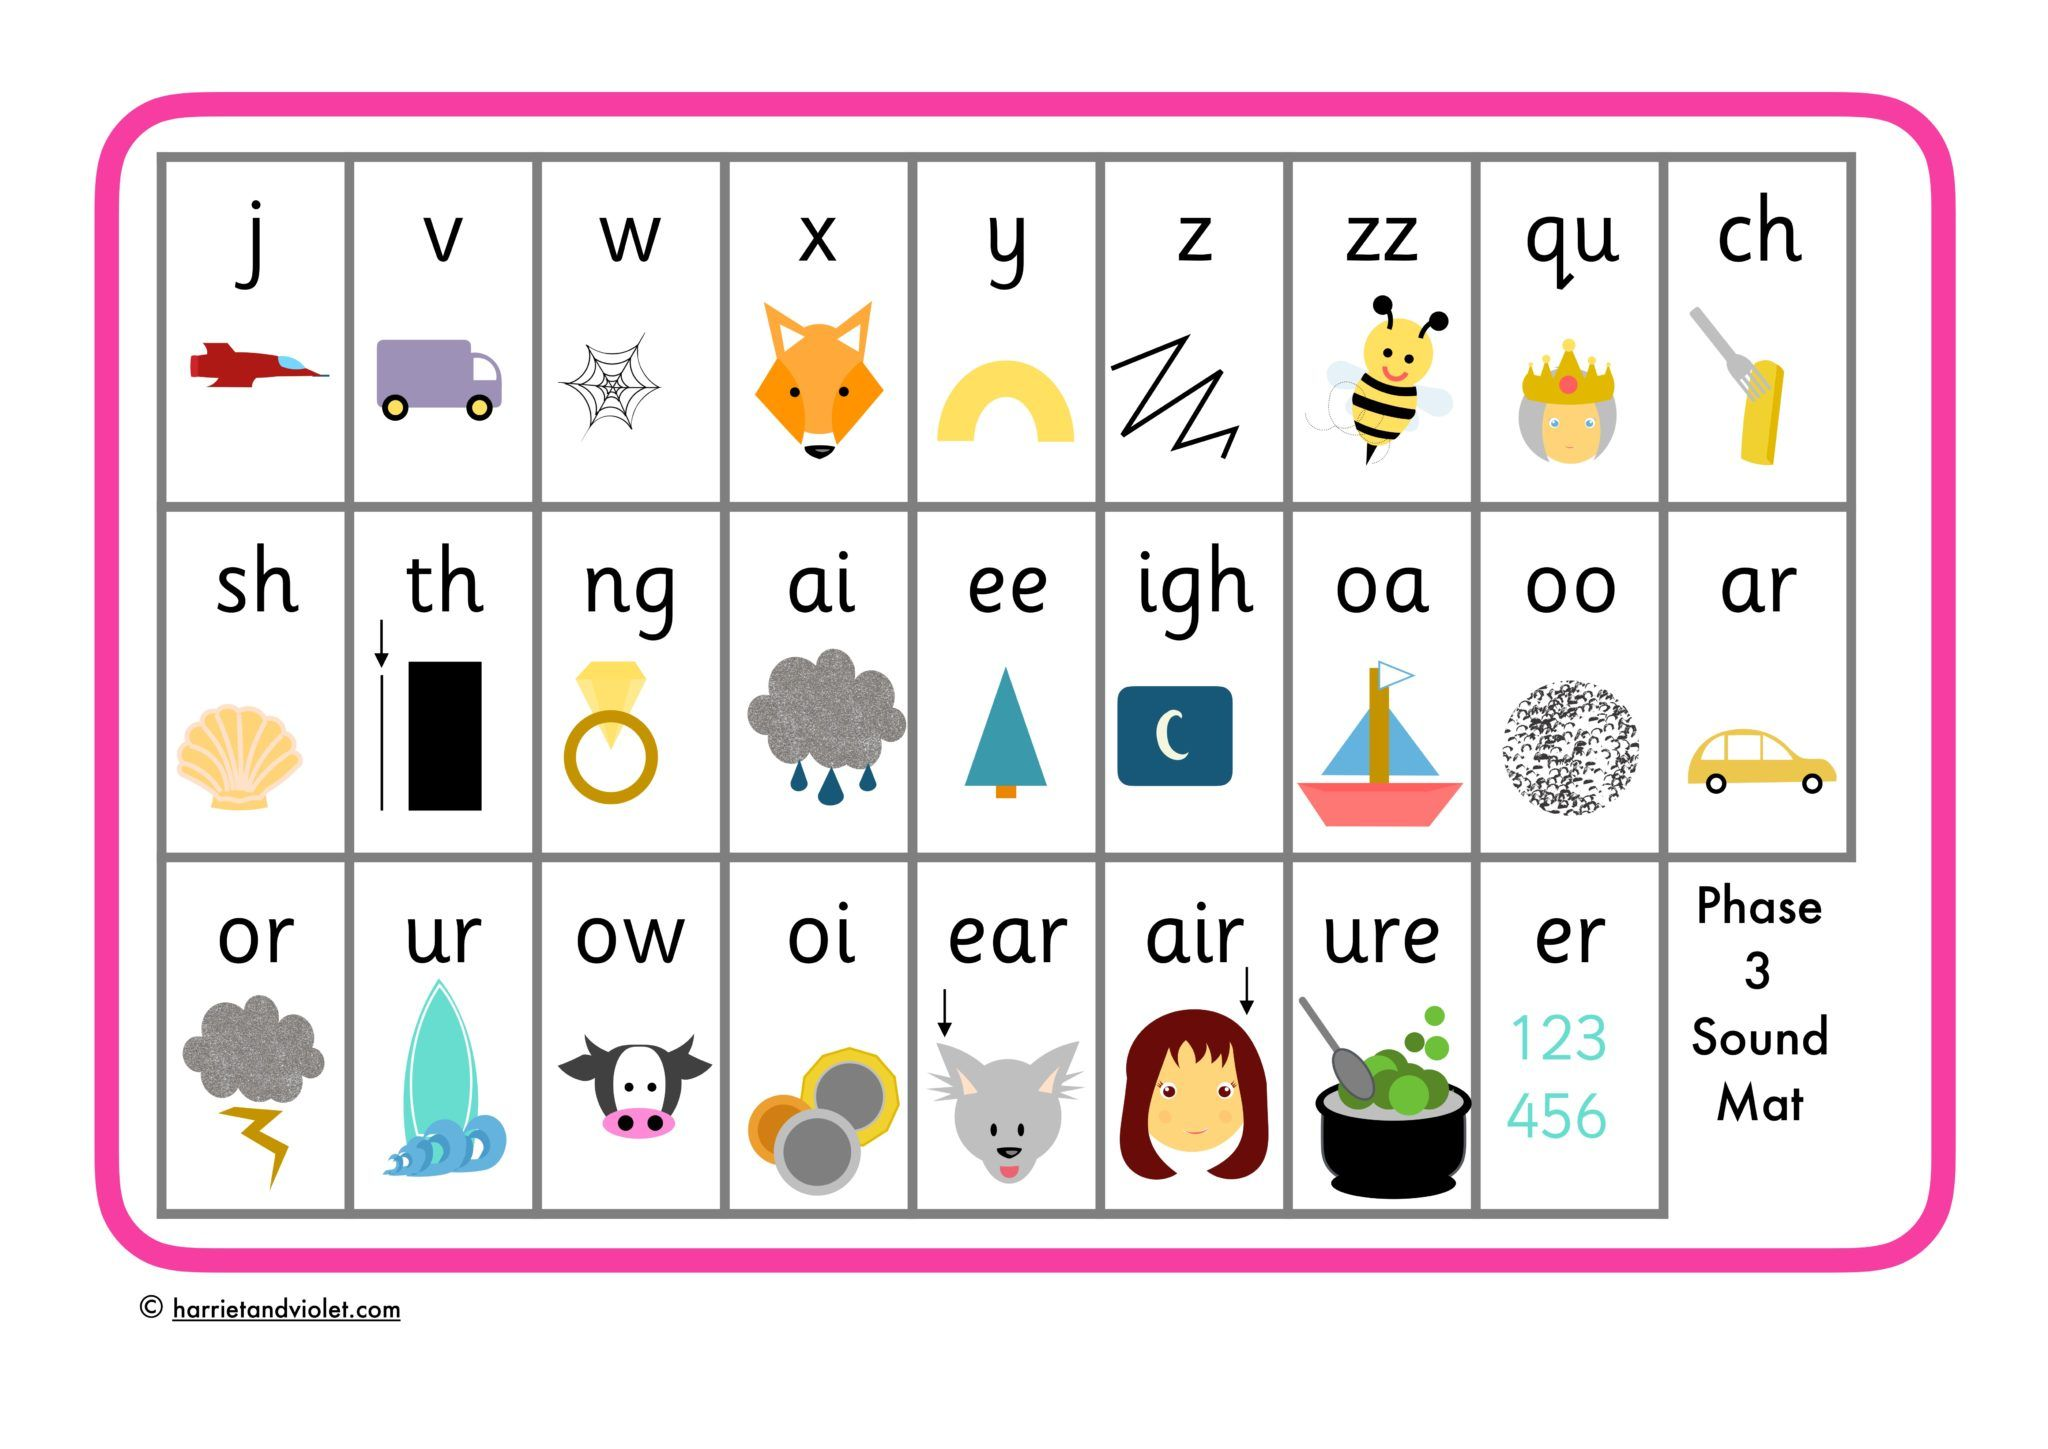 Phase 3 Phonics Sound Mat